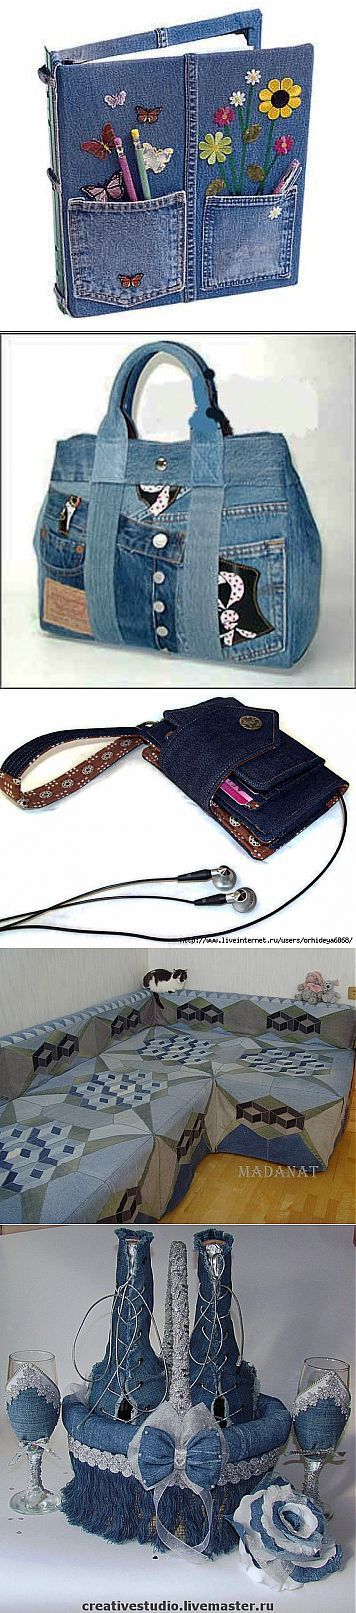 Bolsos y estuches - Denim